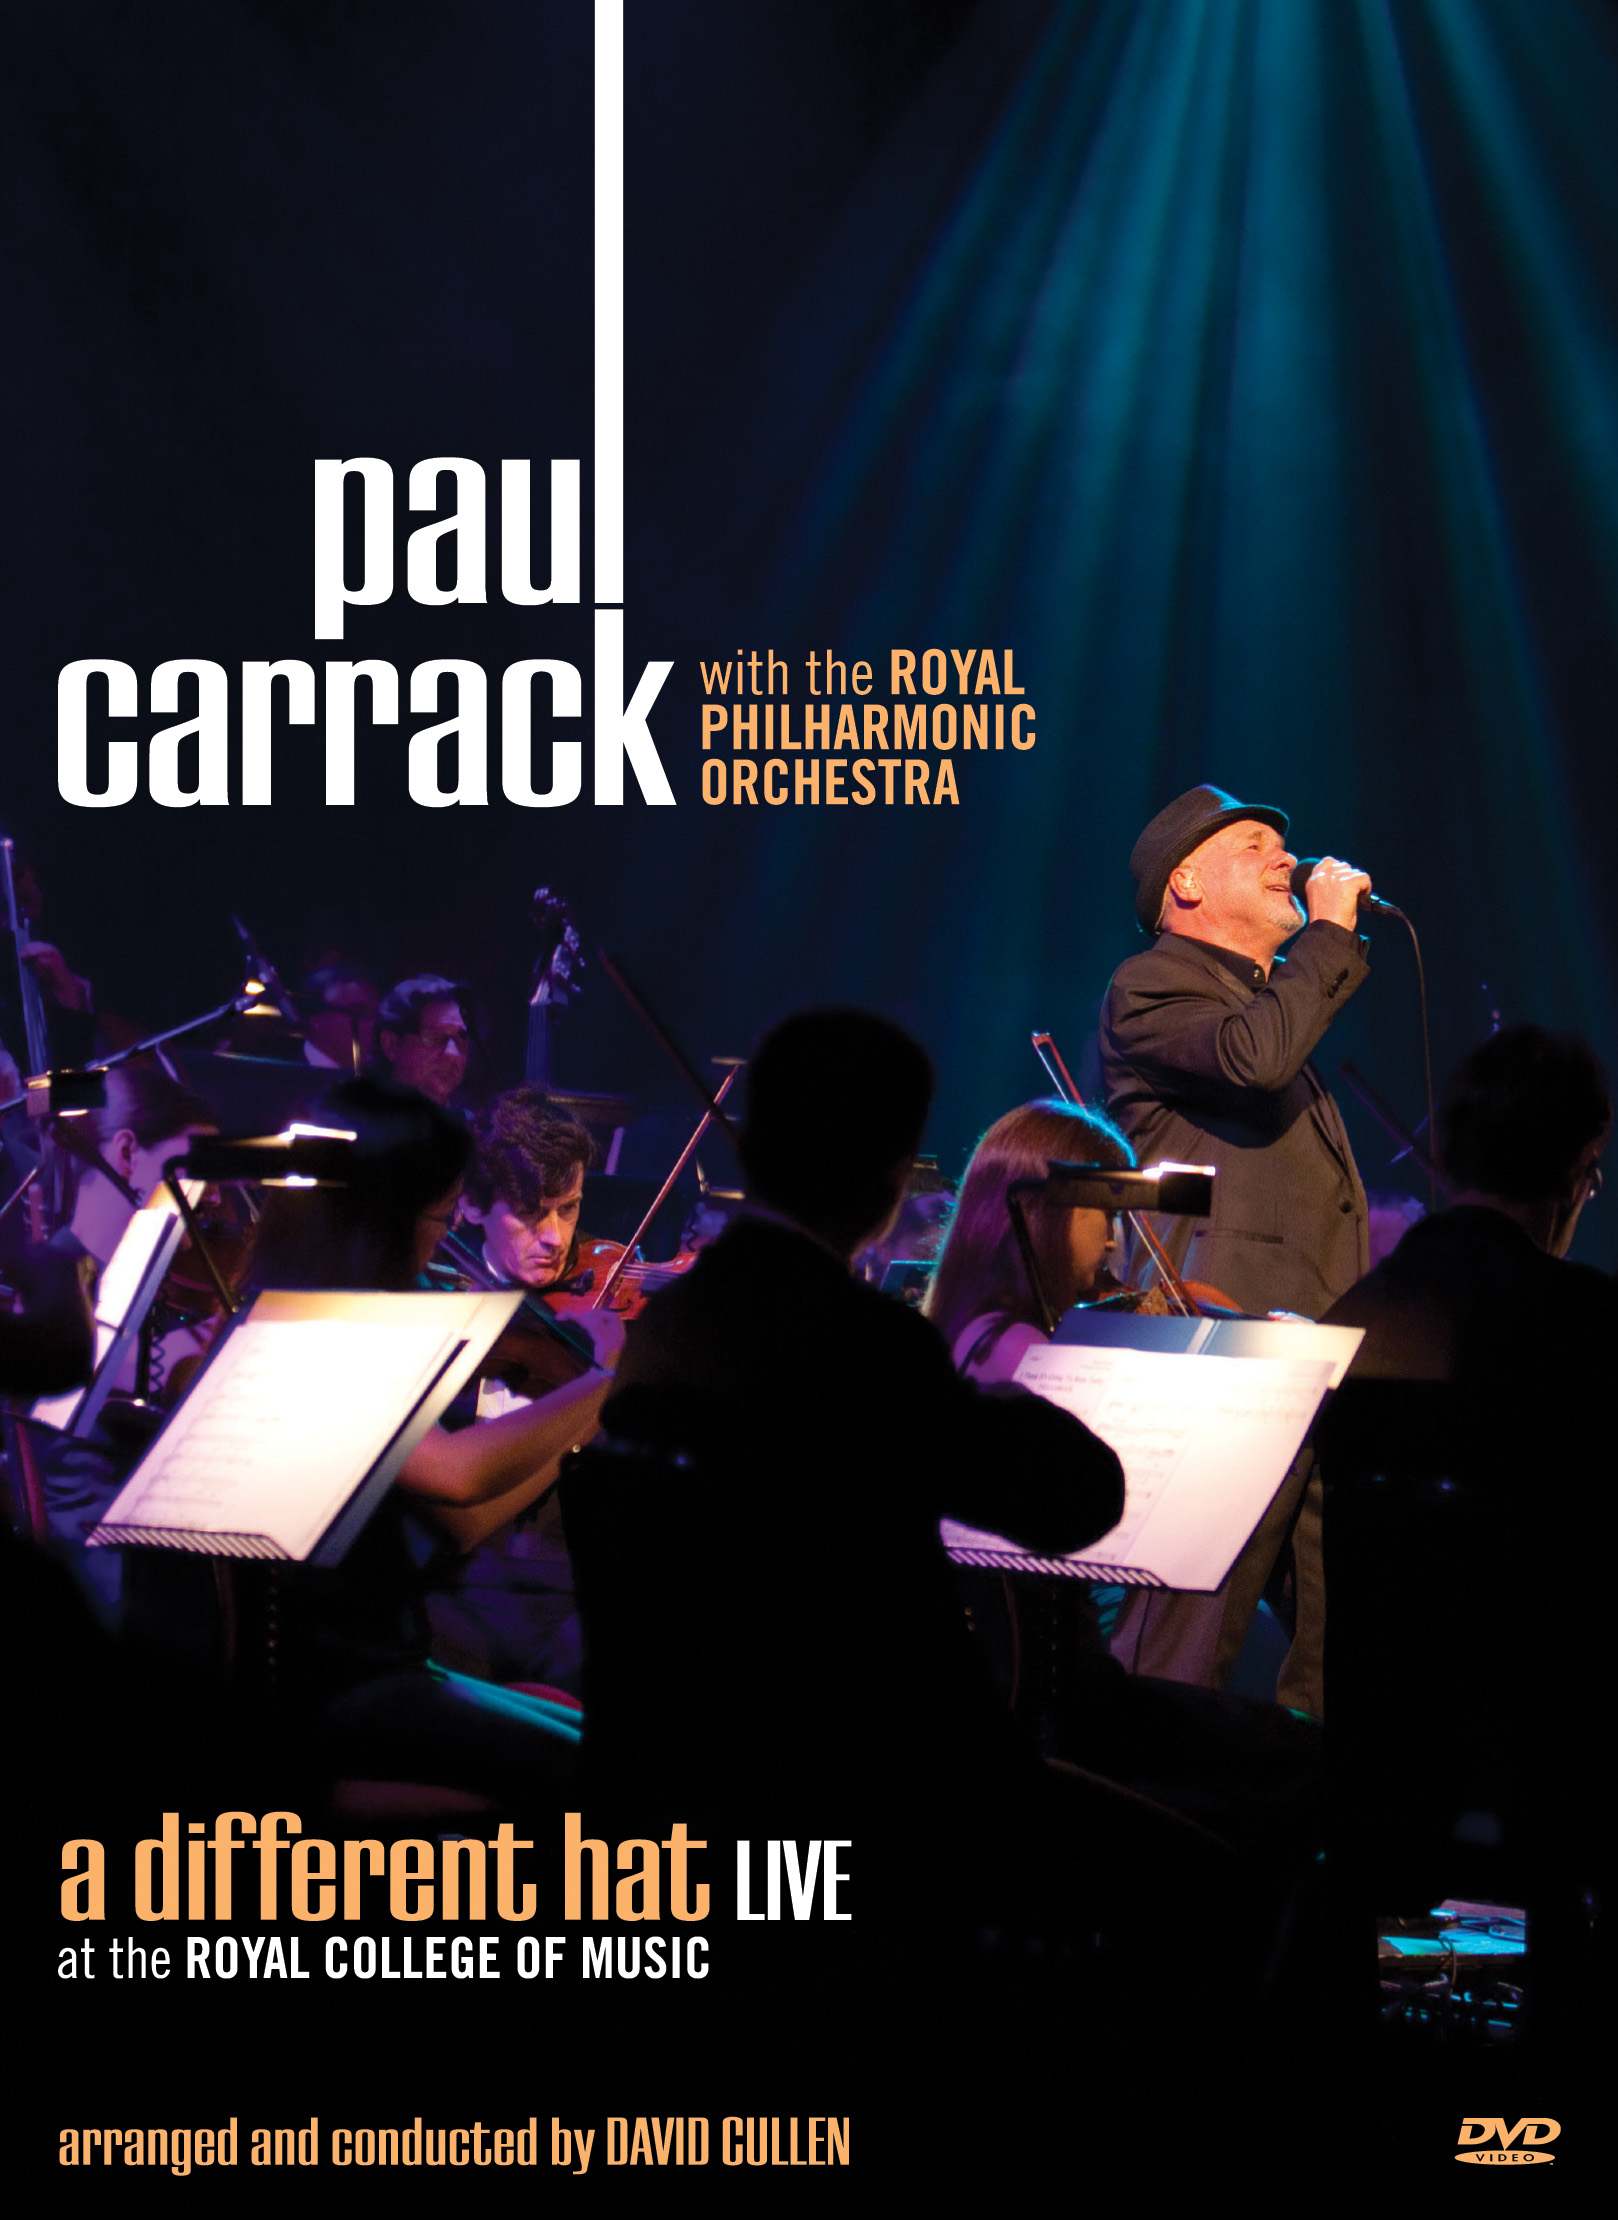 Paul Carrack with the Royal Philharmonic Orchestra: A Different Hat Live